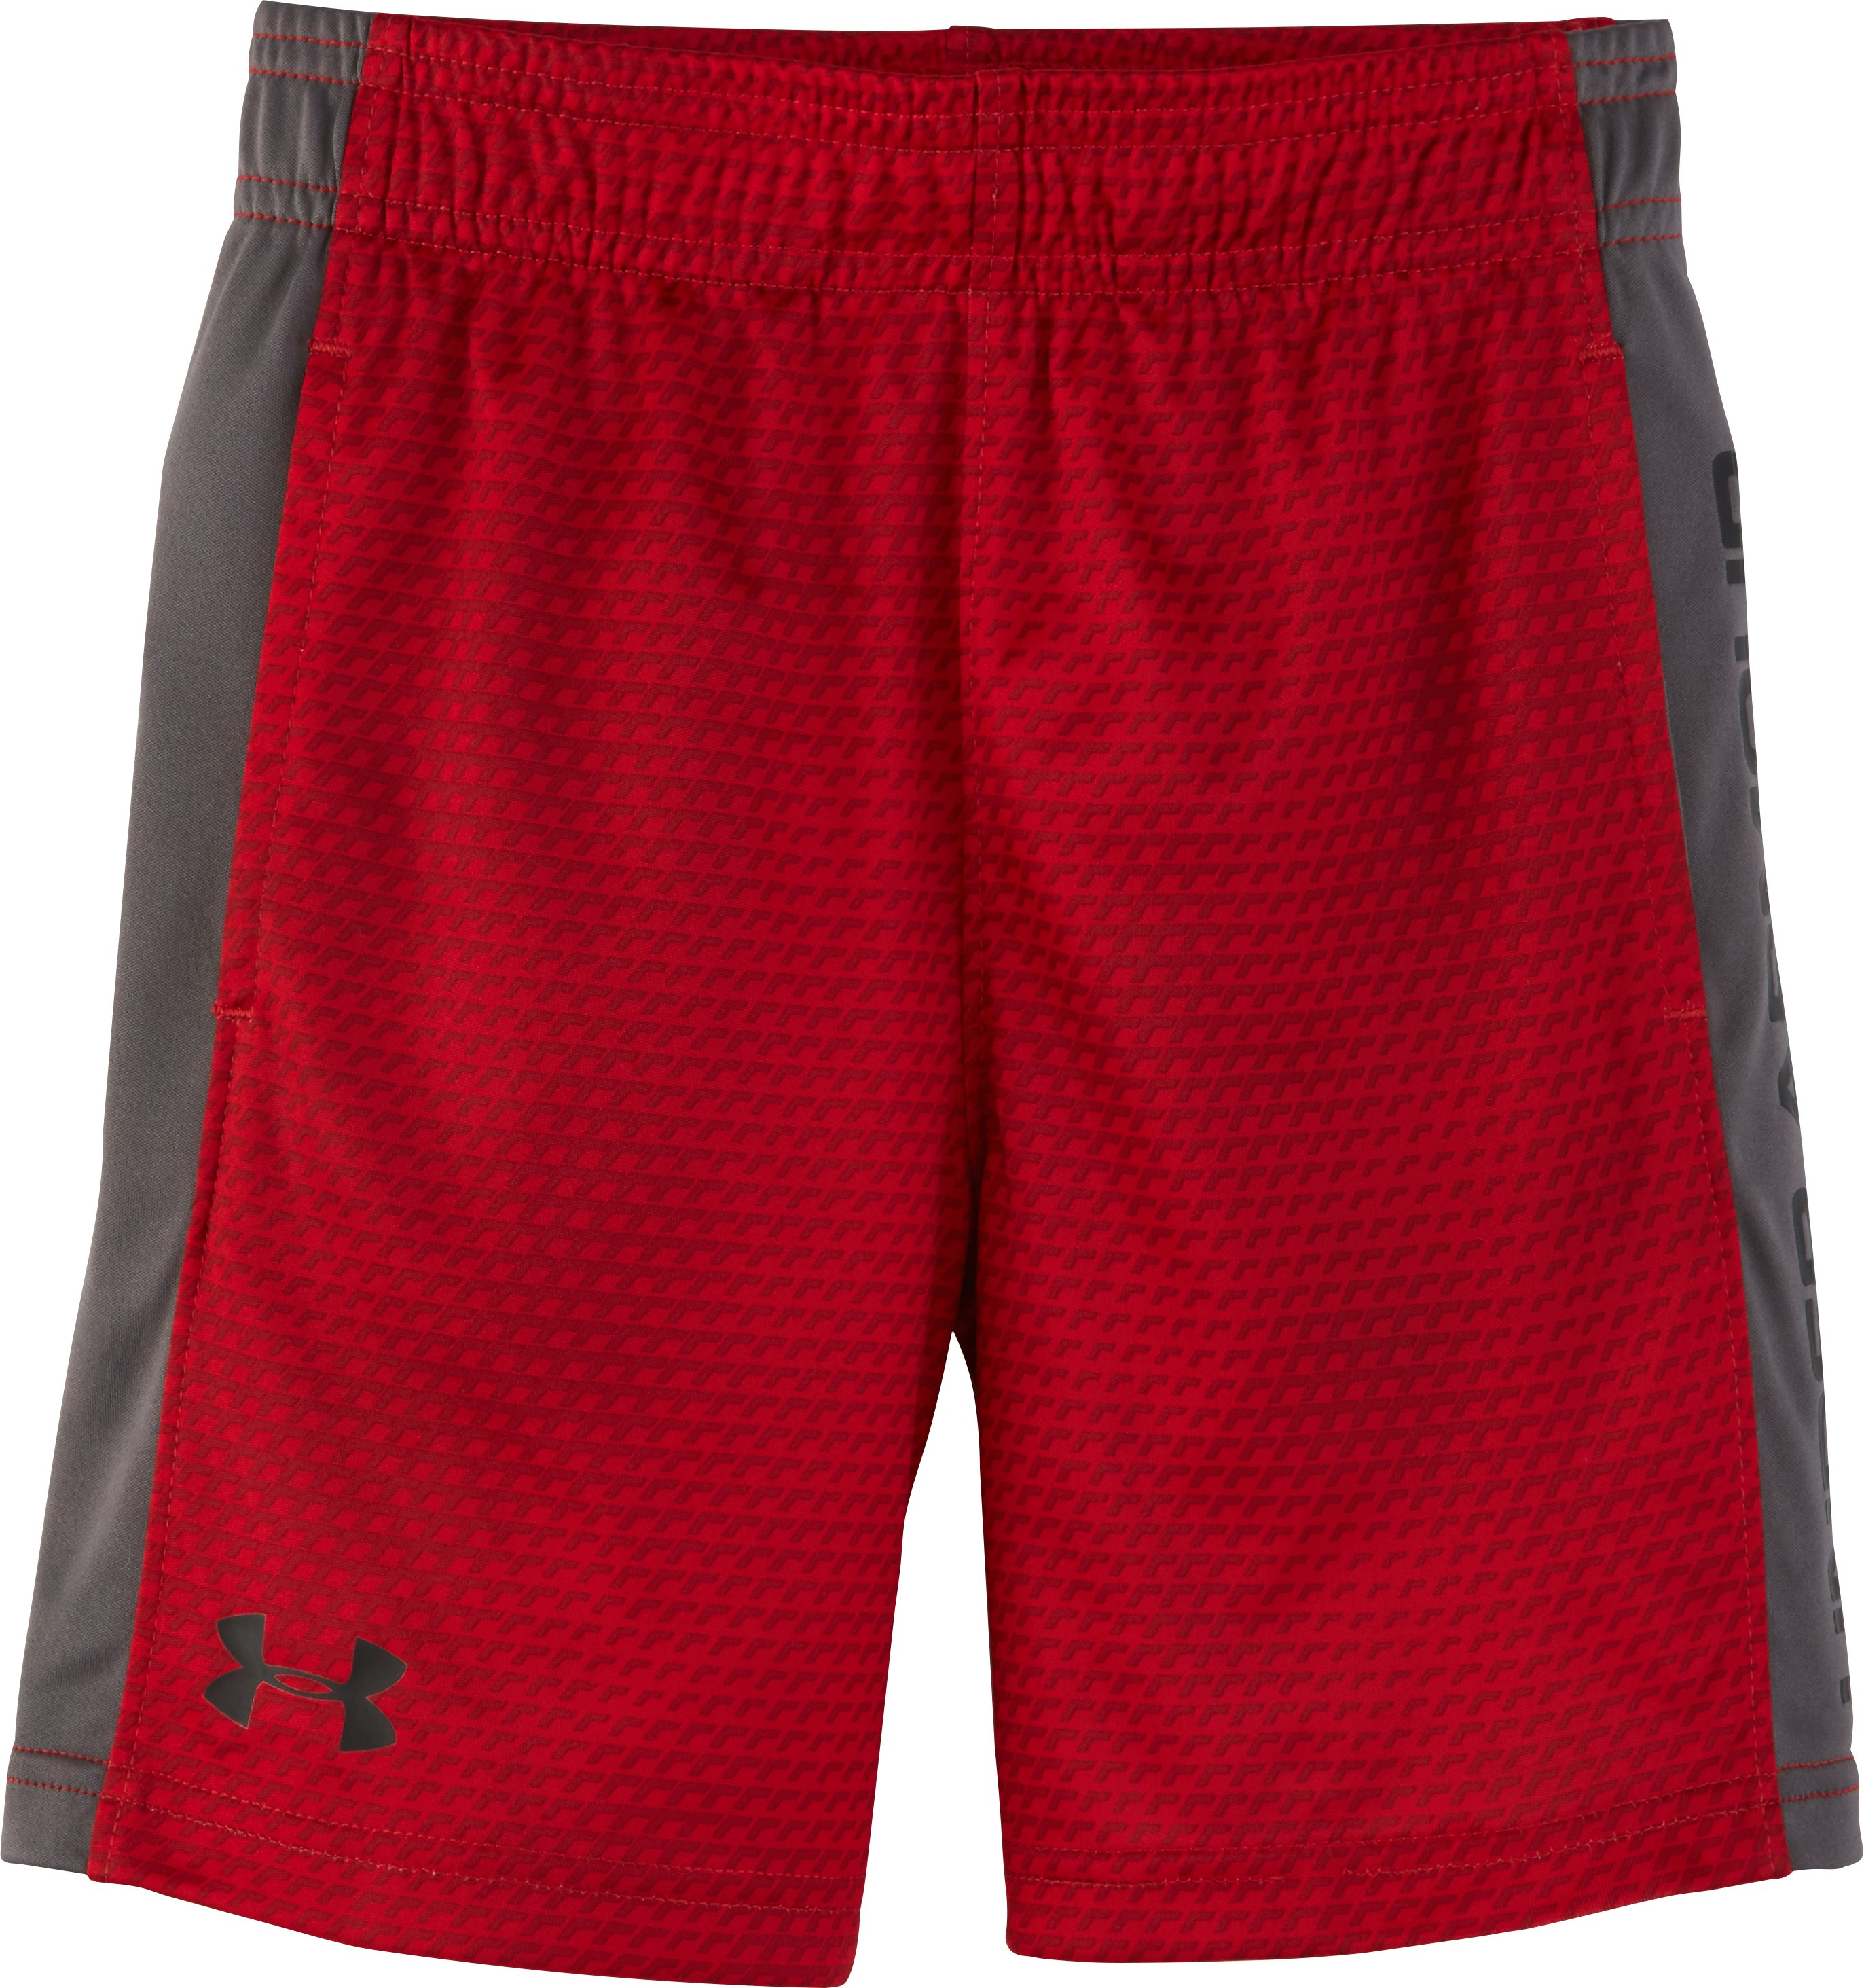 Boys' Toddler UA Game Day Eliminator Shorts, Red, Laydown